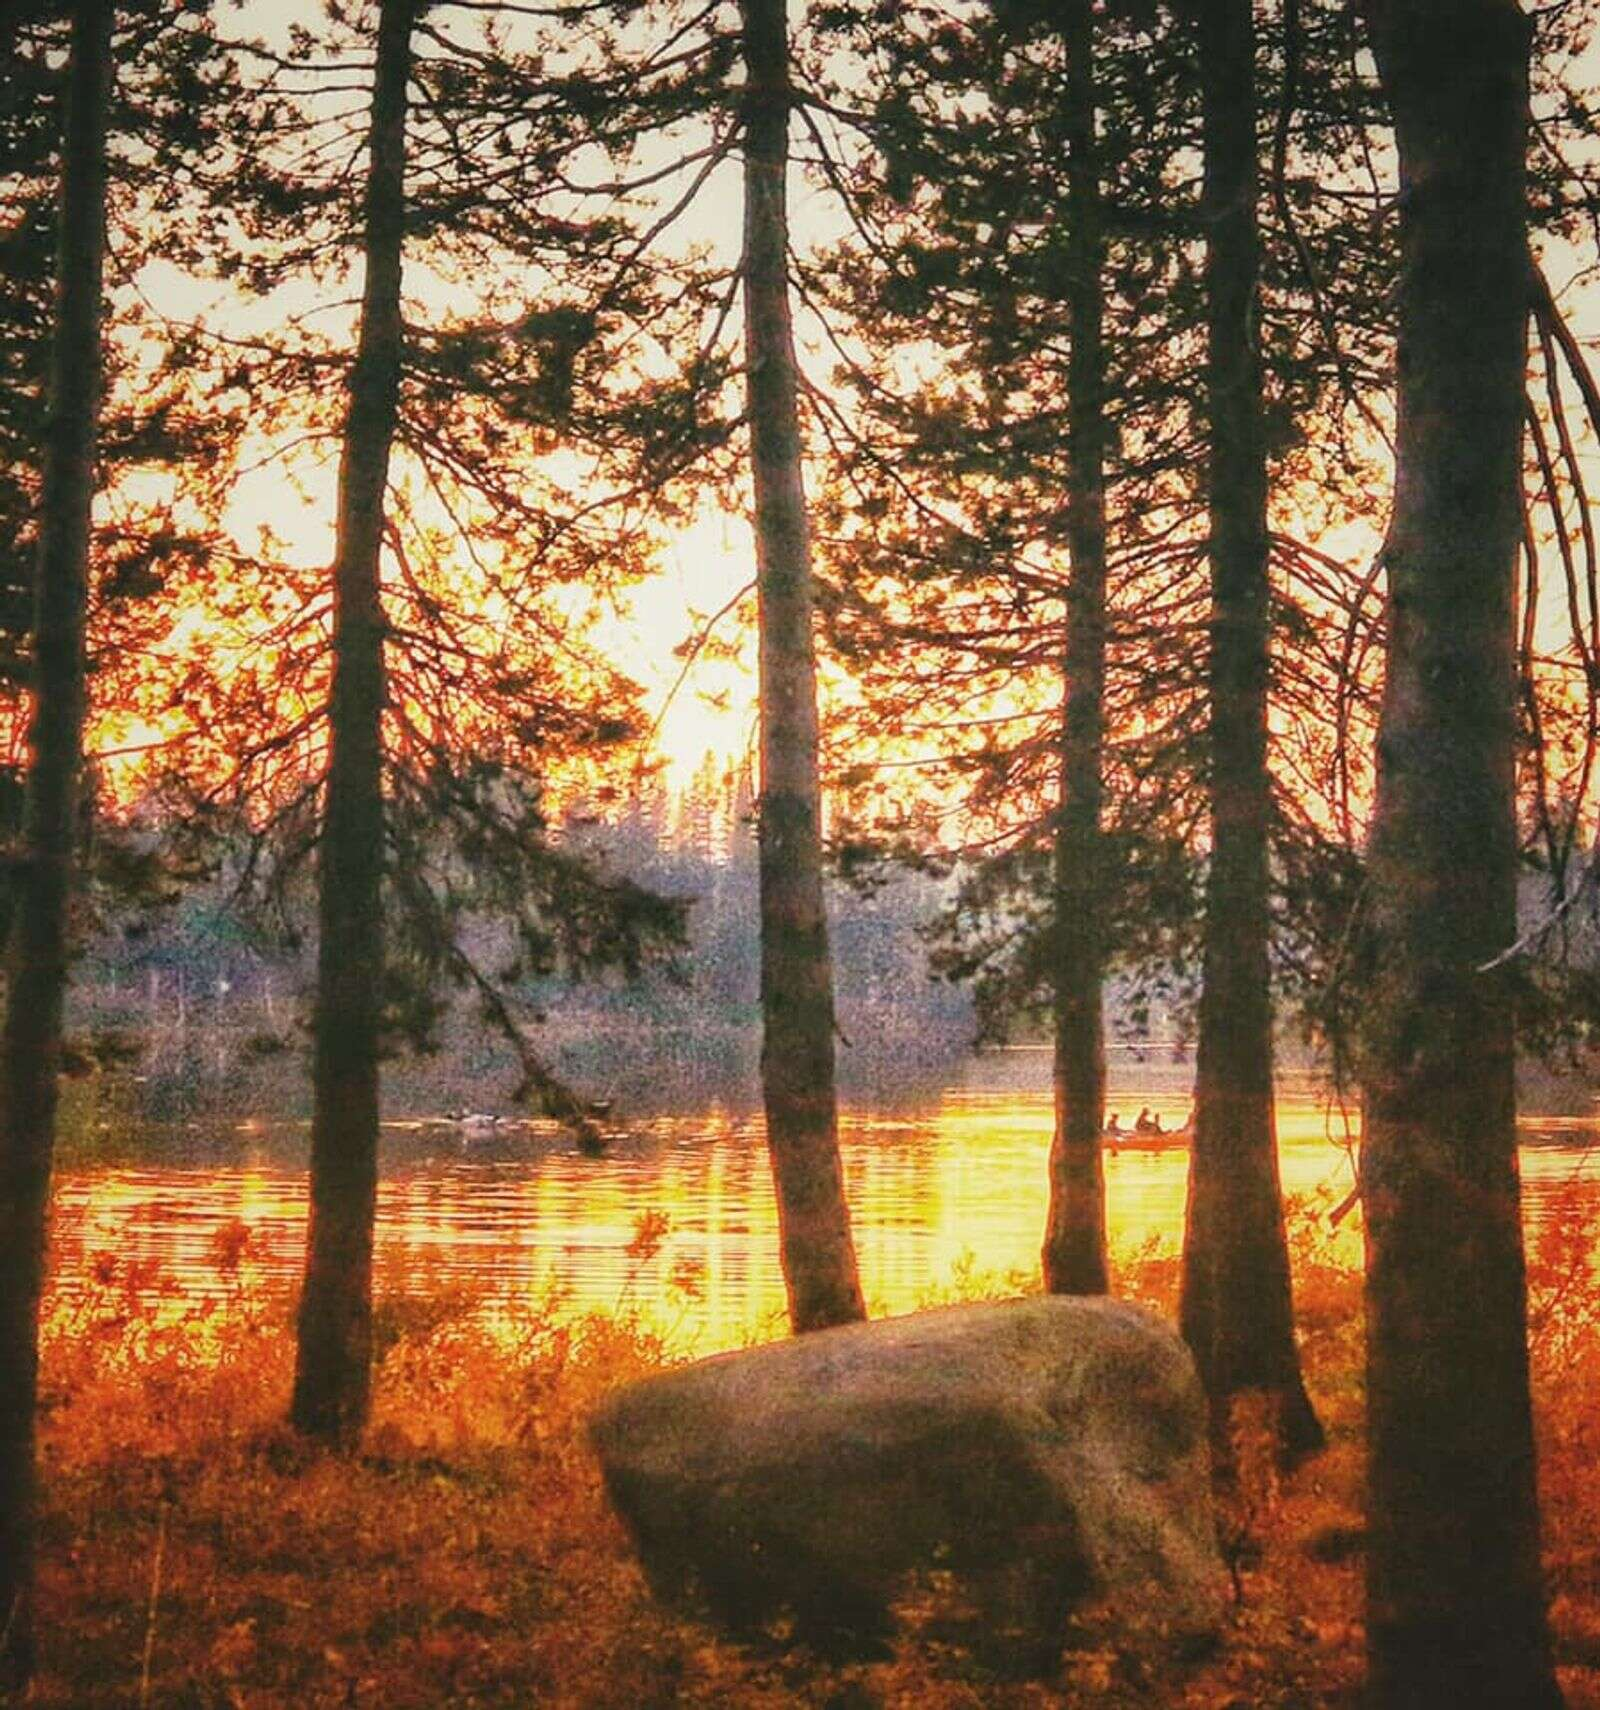 A beautiful fall sunset in Serene Lakes on Donner Summit. | Submitted by Stephanie Becker